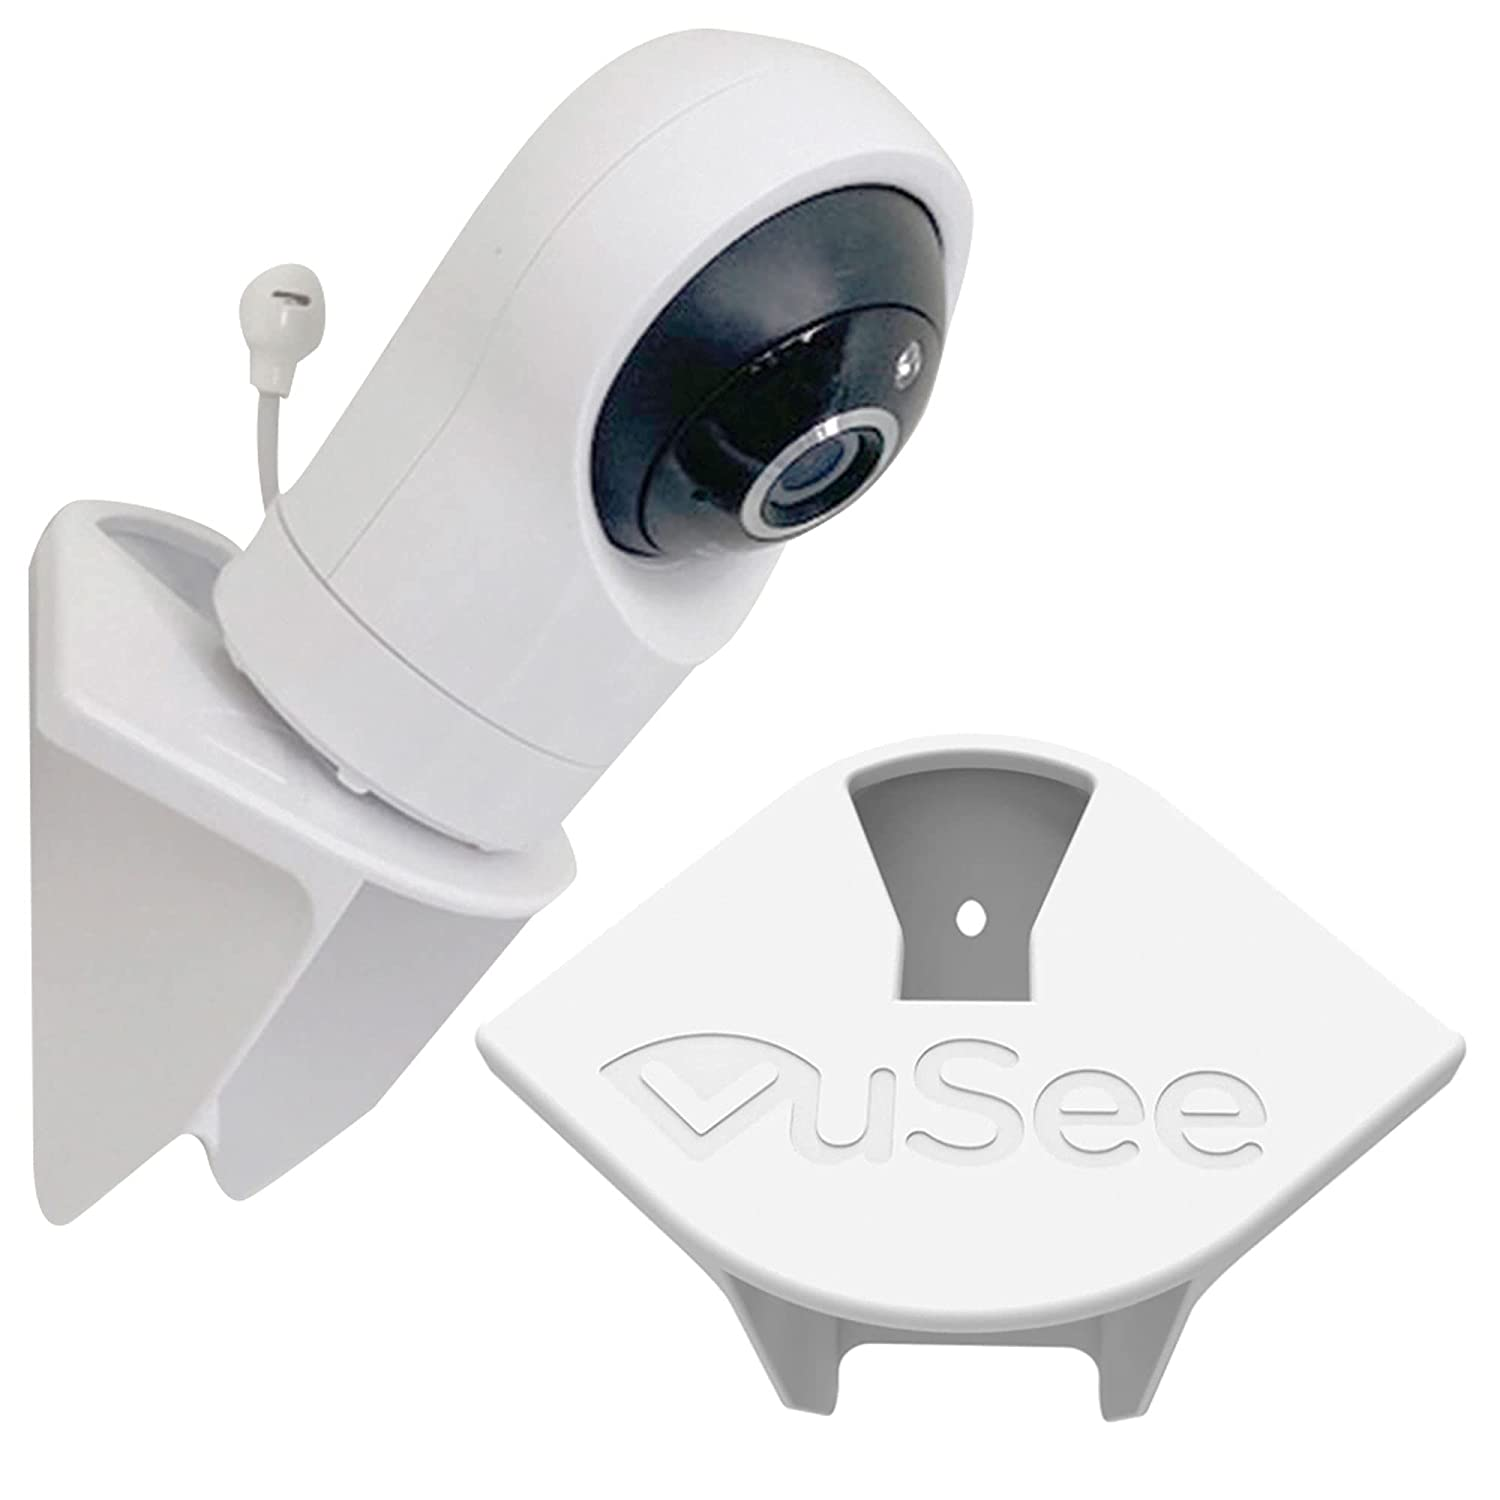 The New VuSee! | VuSee Anywhere | Universal Baby Monitor Shelf | Universal Mount | Compatible with Most Baby Monitors | Safe Cord Management | Easy Installation